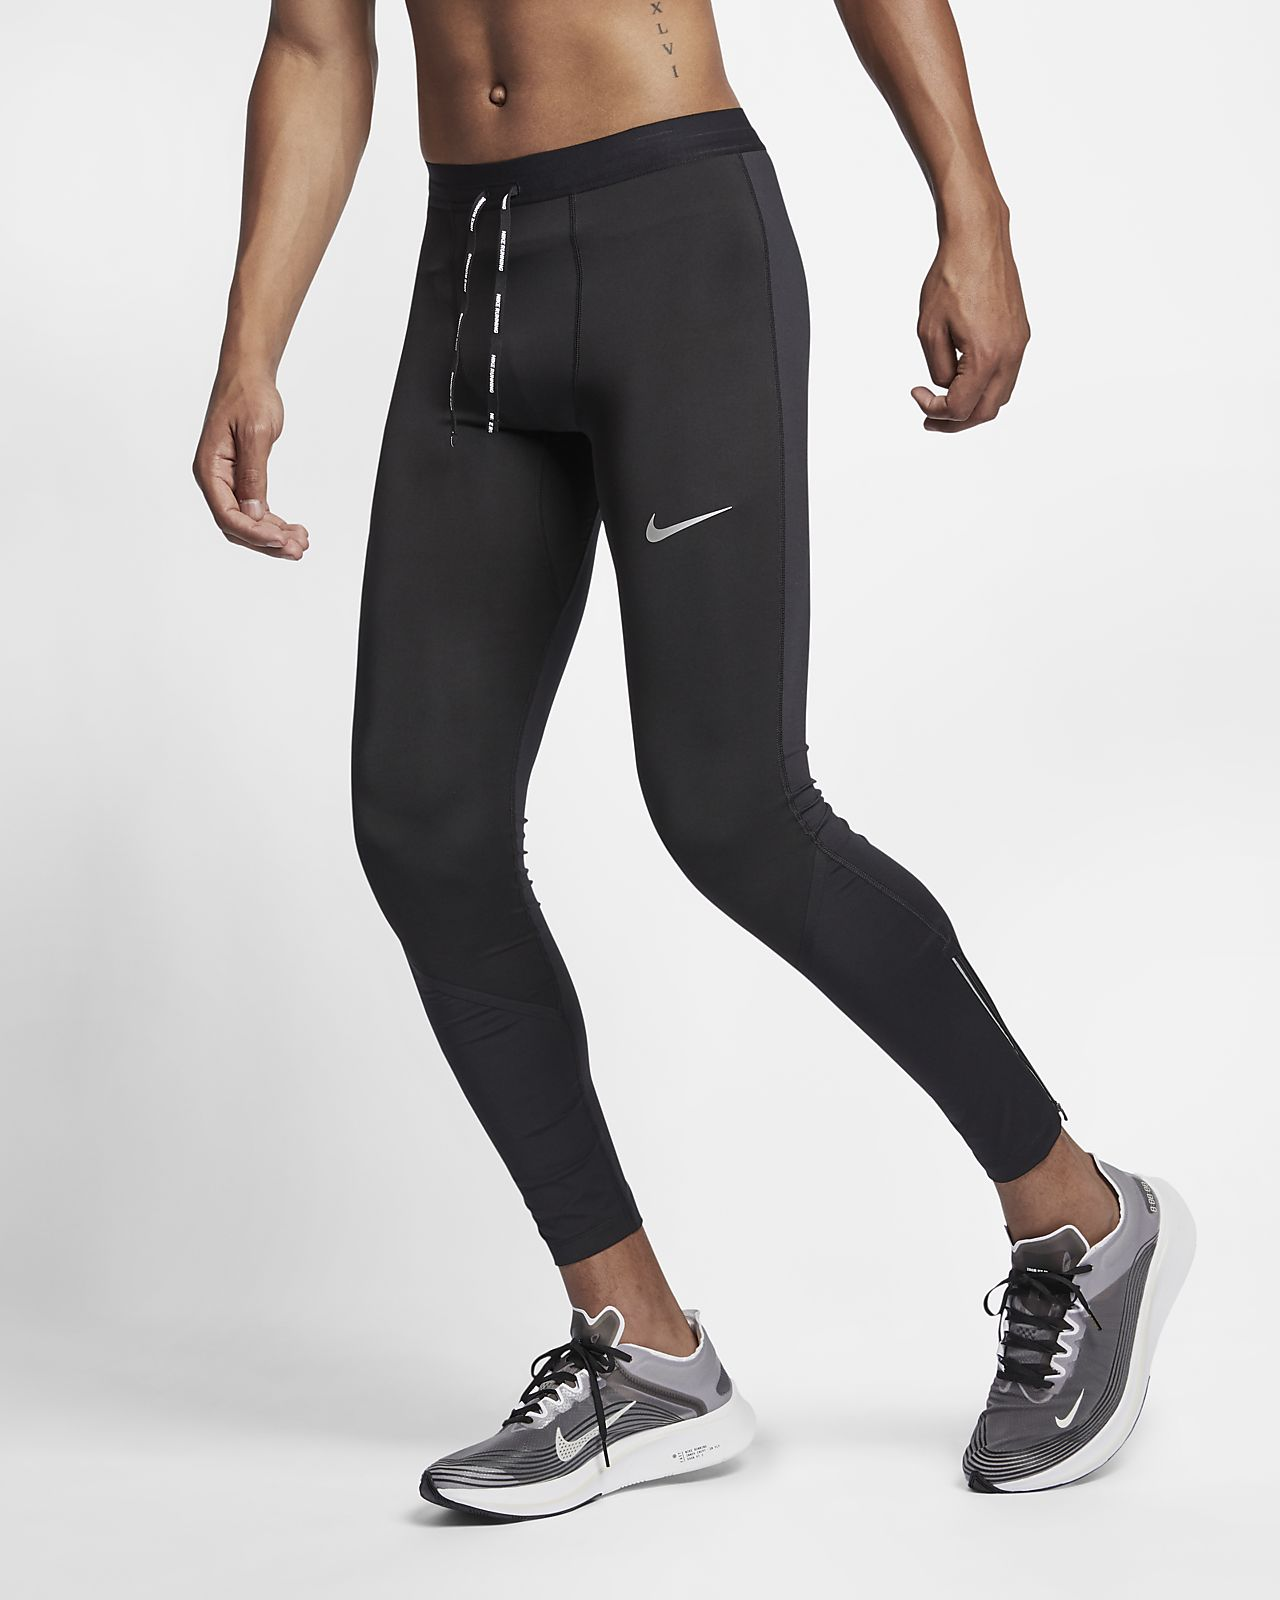 e974d887ec063 Nike Power Tech Men's Running Tights. Nike.com IE